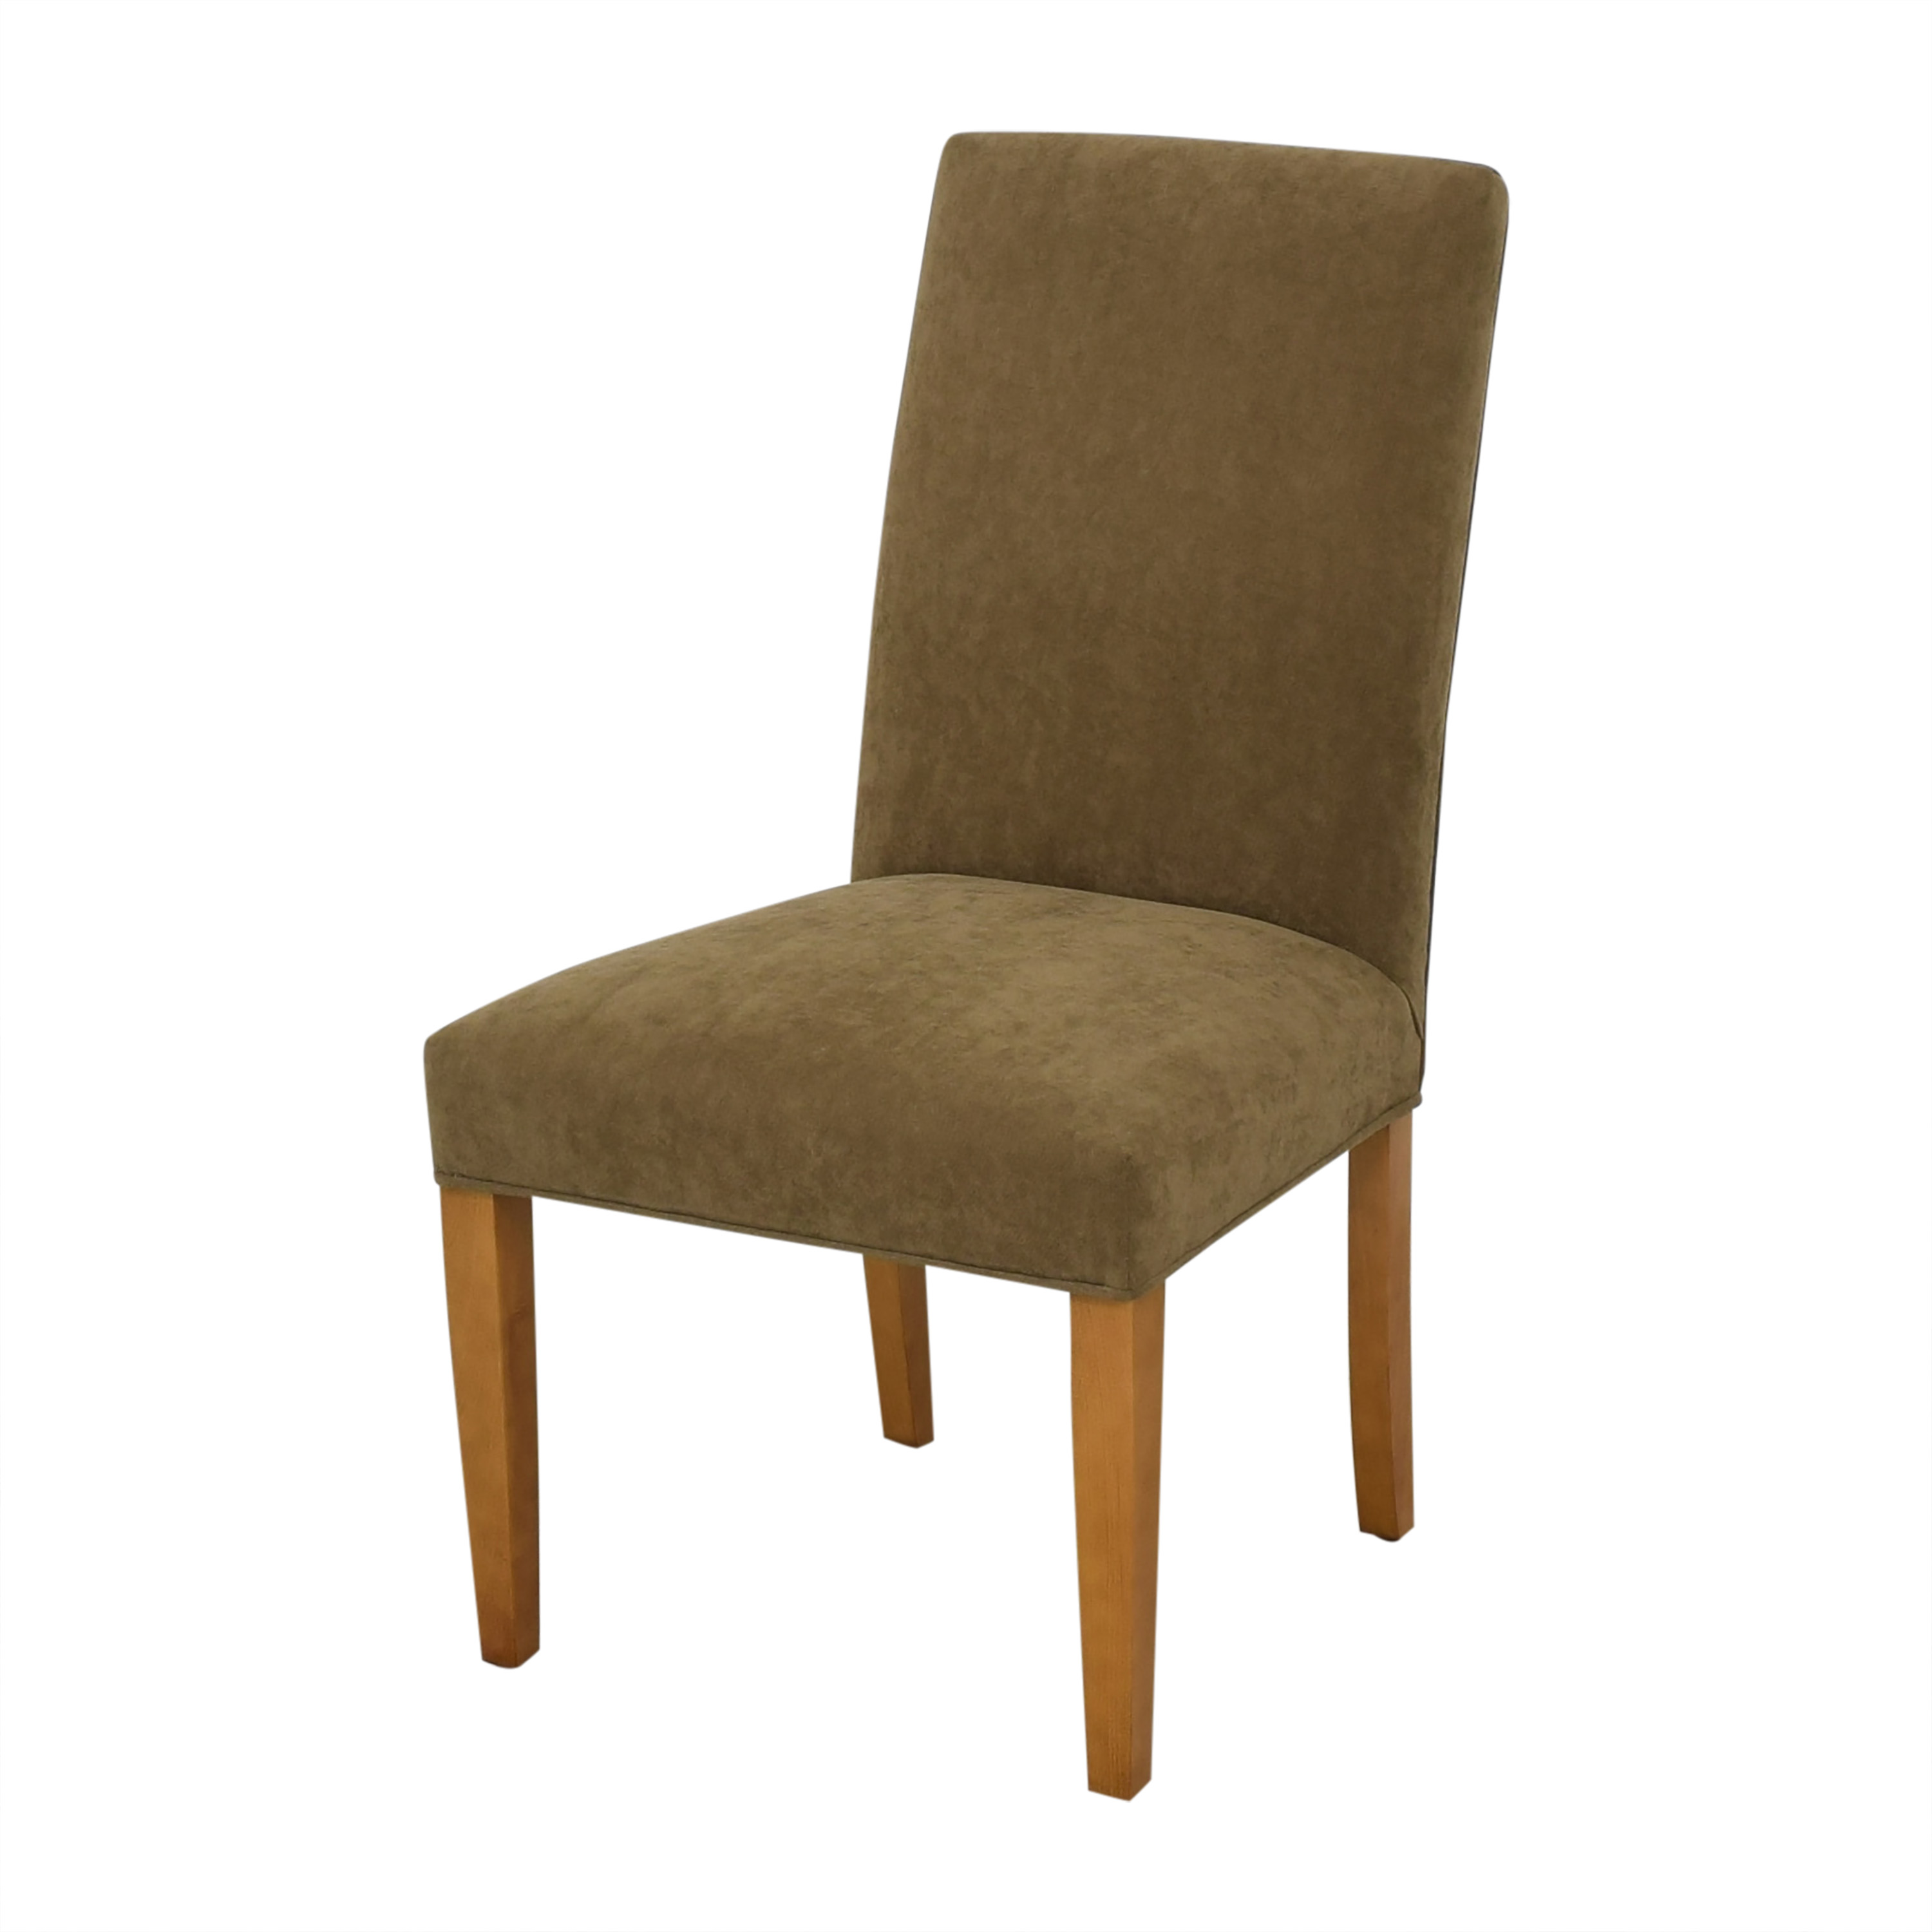 Crate & Barrel Crate & Barrel Miles Dining Chairs discount